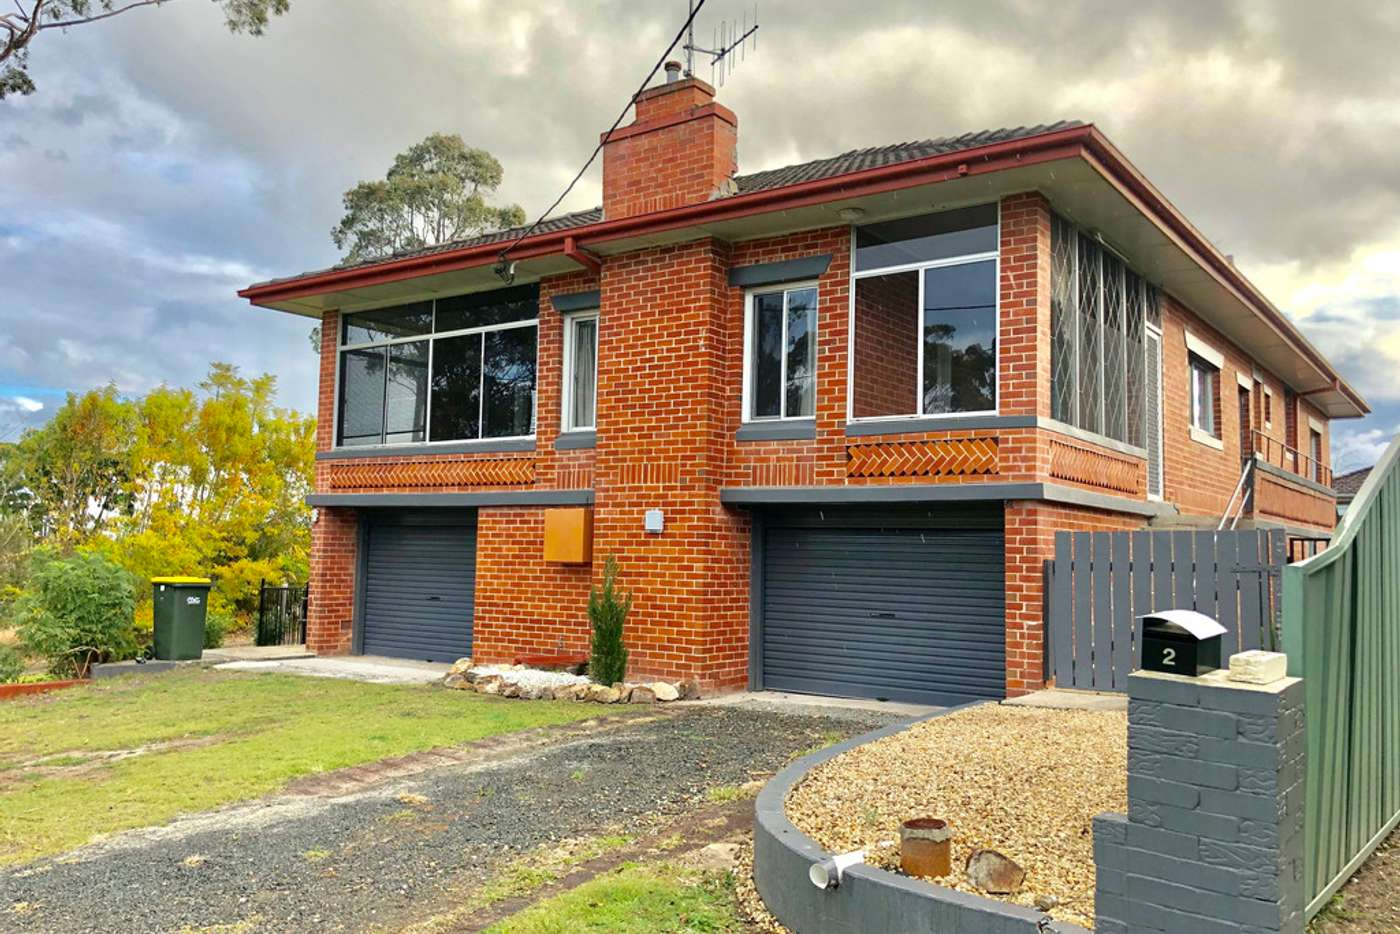 Main view of Homely house listing, 2 Nelson Street, Taree NSW 2430